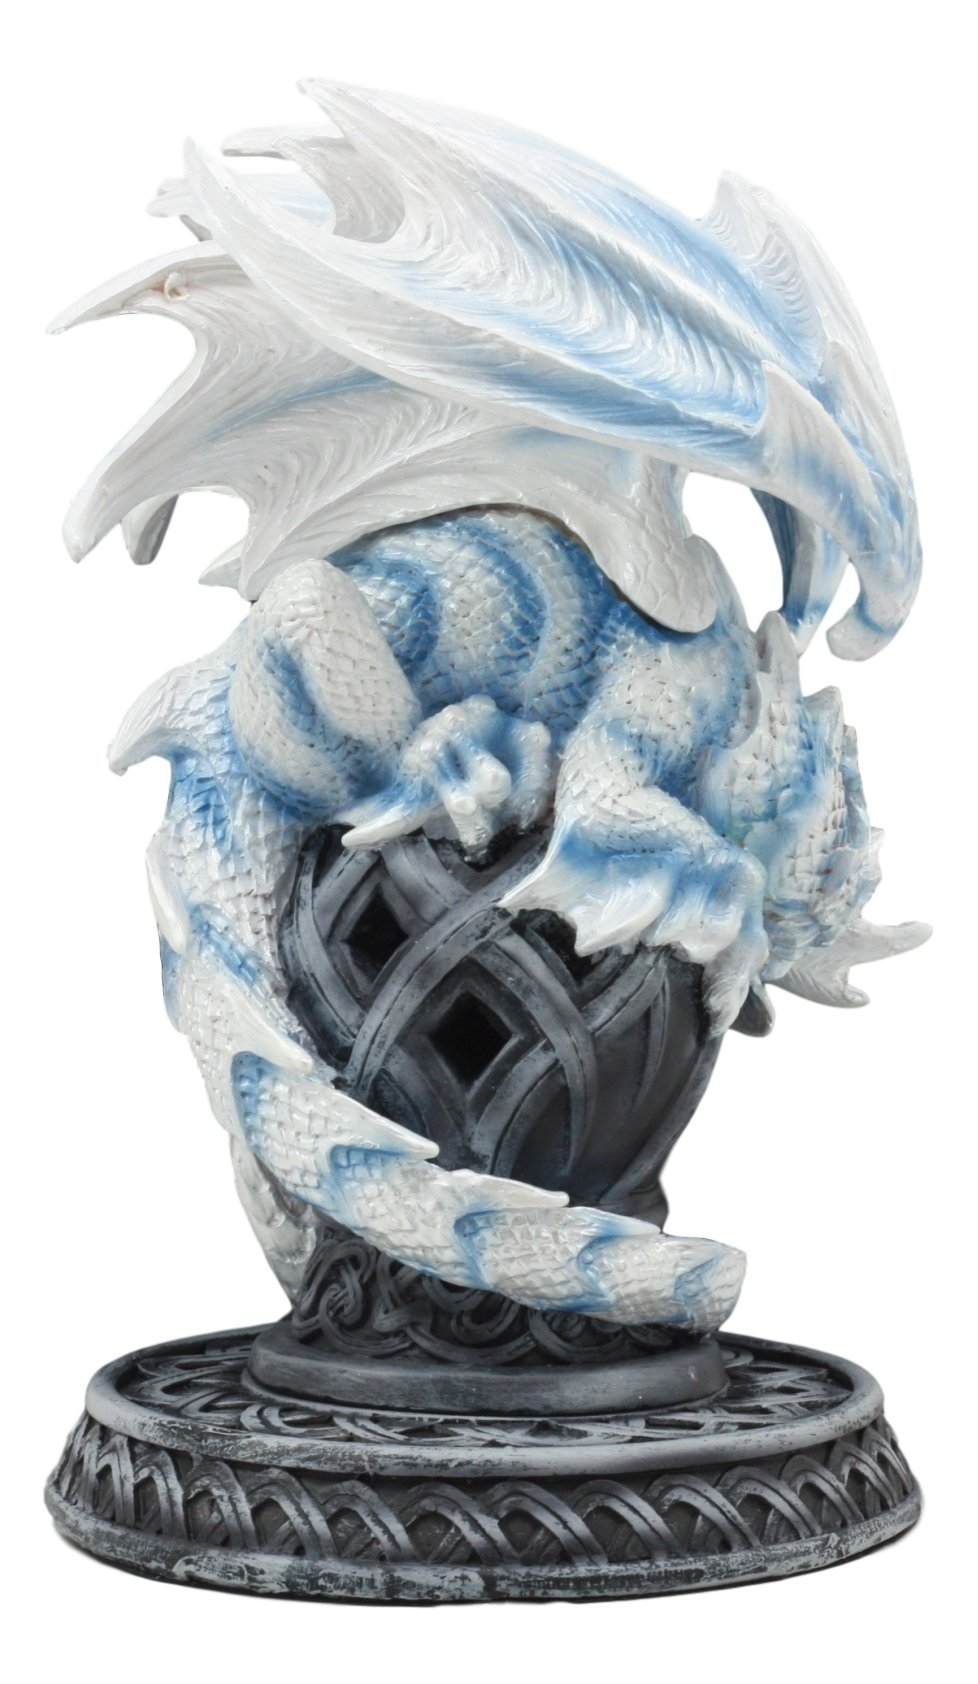 Ebros Guardian of Celtic Tomb White Icycle Dragon Backflow Cone Incense Holder Statue 8.5''Tall Fantasy Icelandic Dragon LED Tea Light Candle Holder Figurine by Ebros Gift (Image #4)